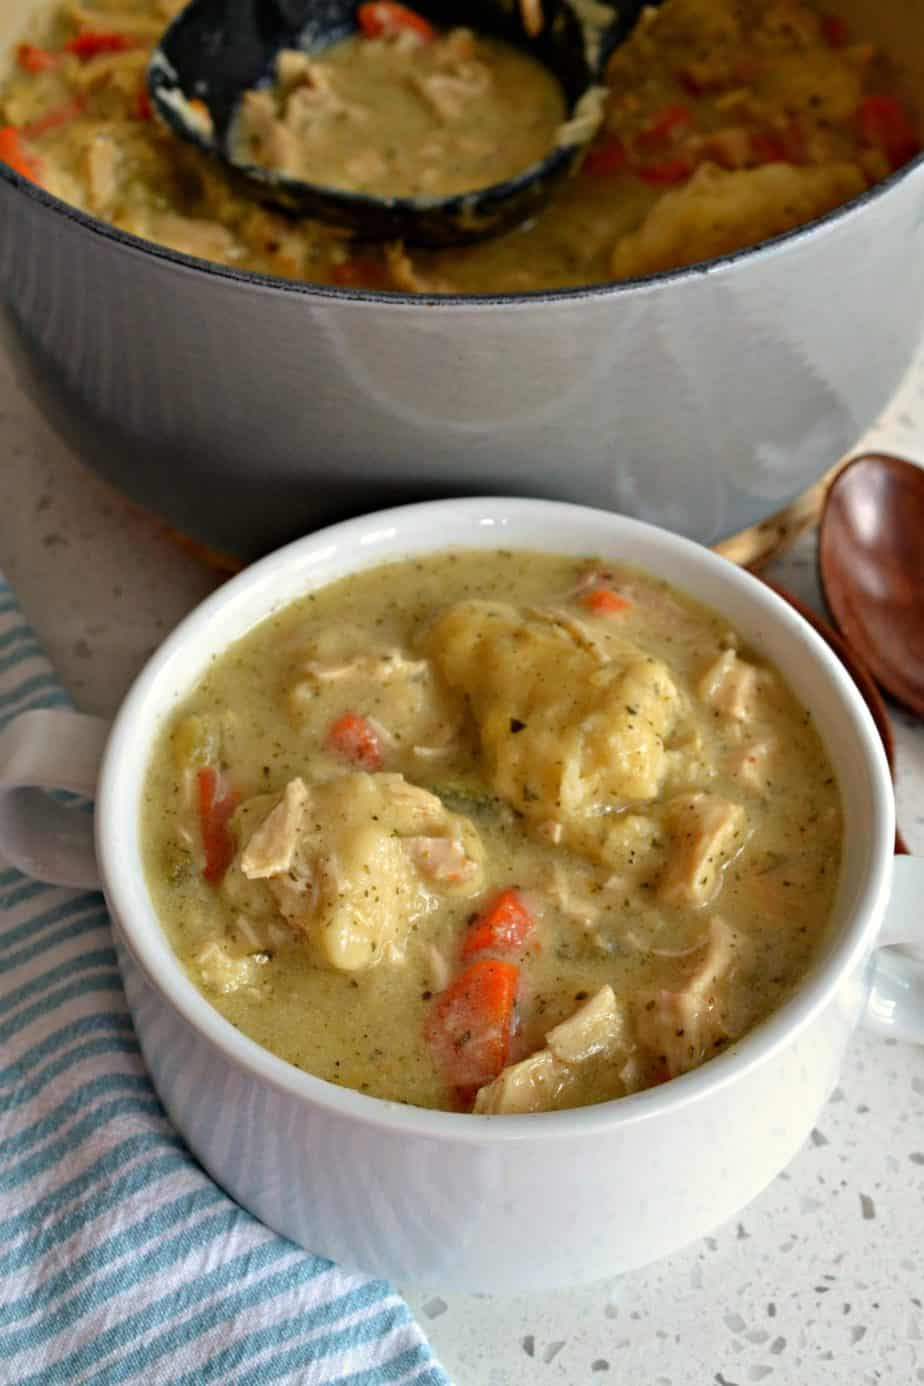 This Chicken and Dumpling Soup recipe will really satisfy your longing for a good home cooked meal.